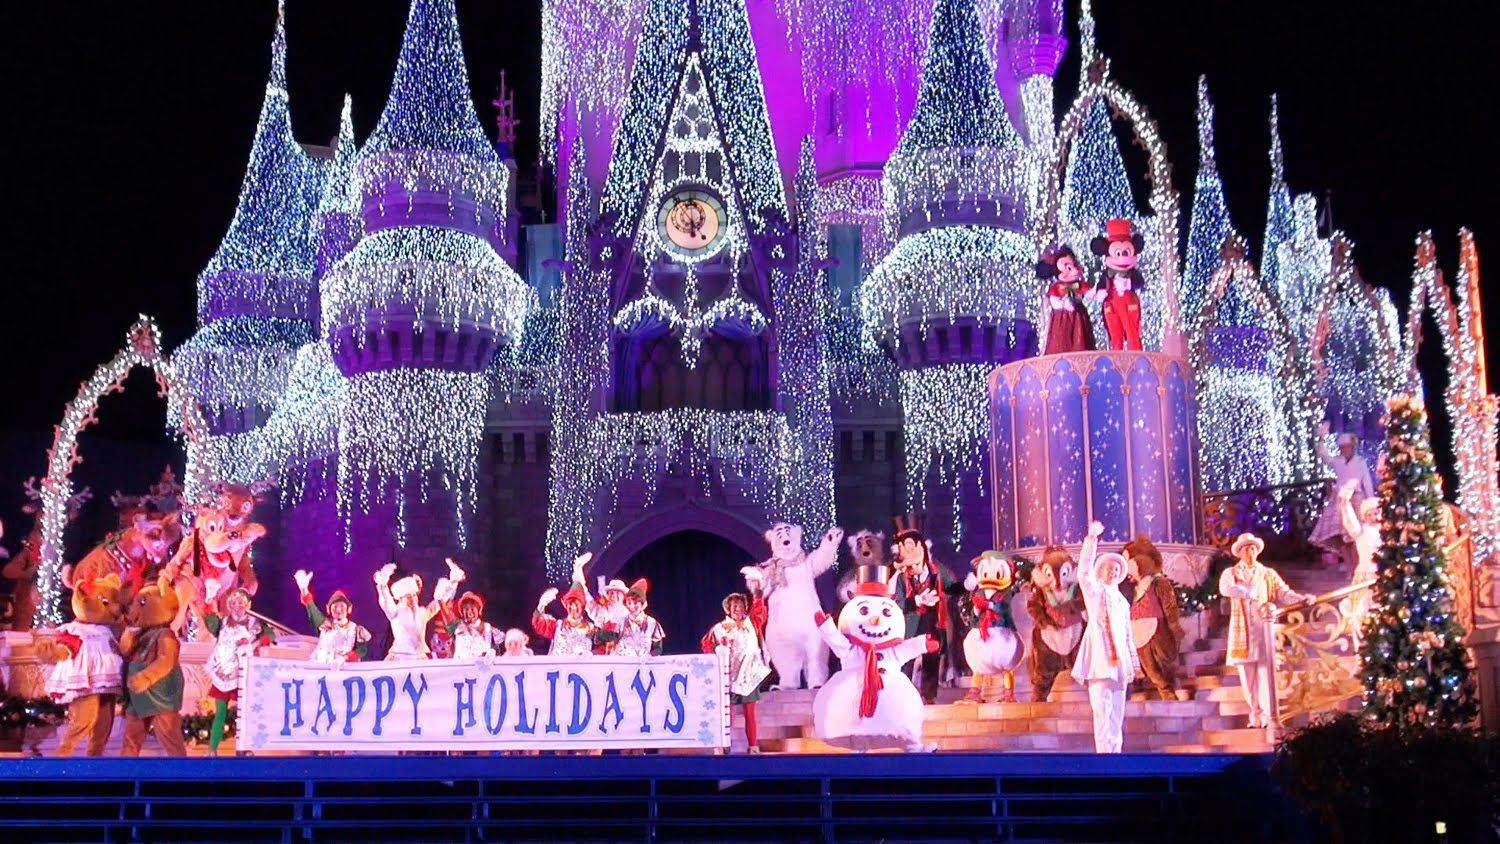 navidad while magic kingdom - Disney World Christmas Decorations 2017